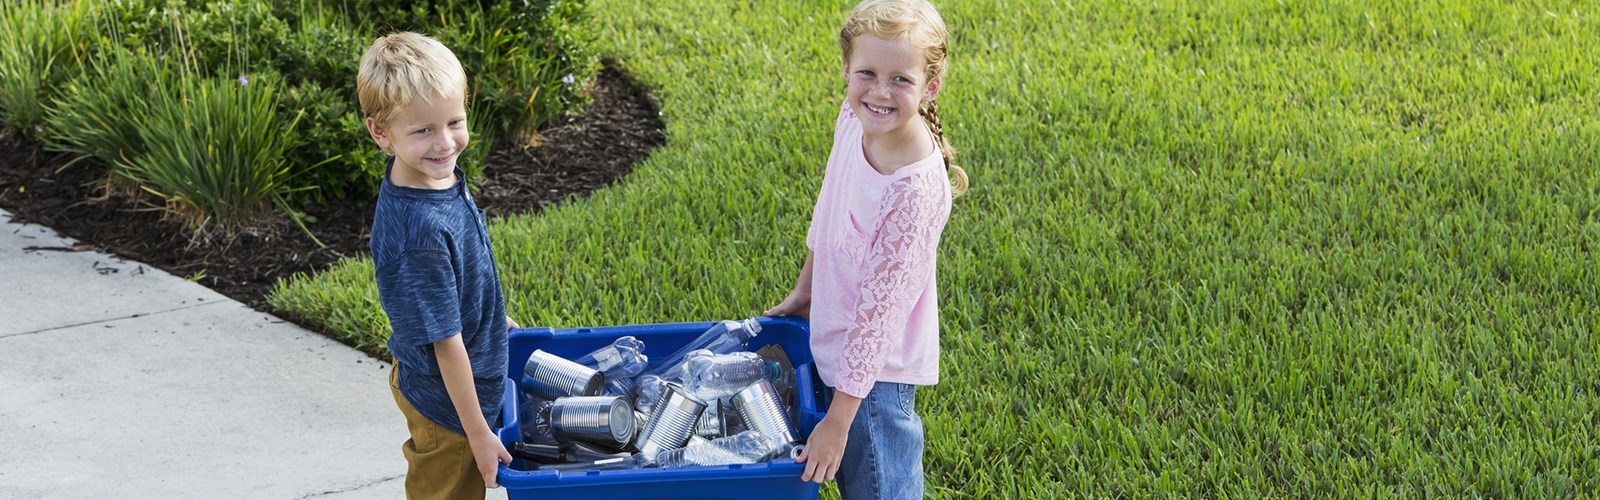 Kids taking blue box to the curb